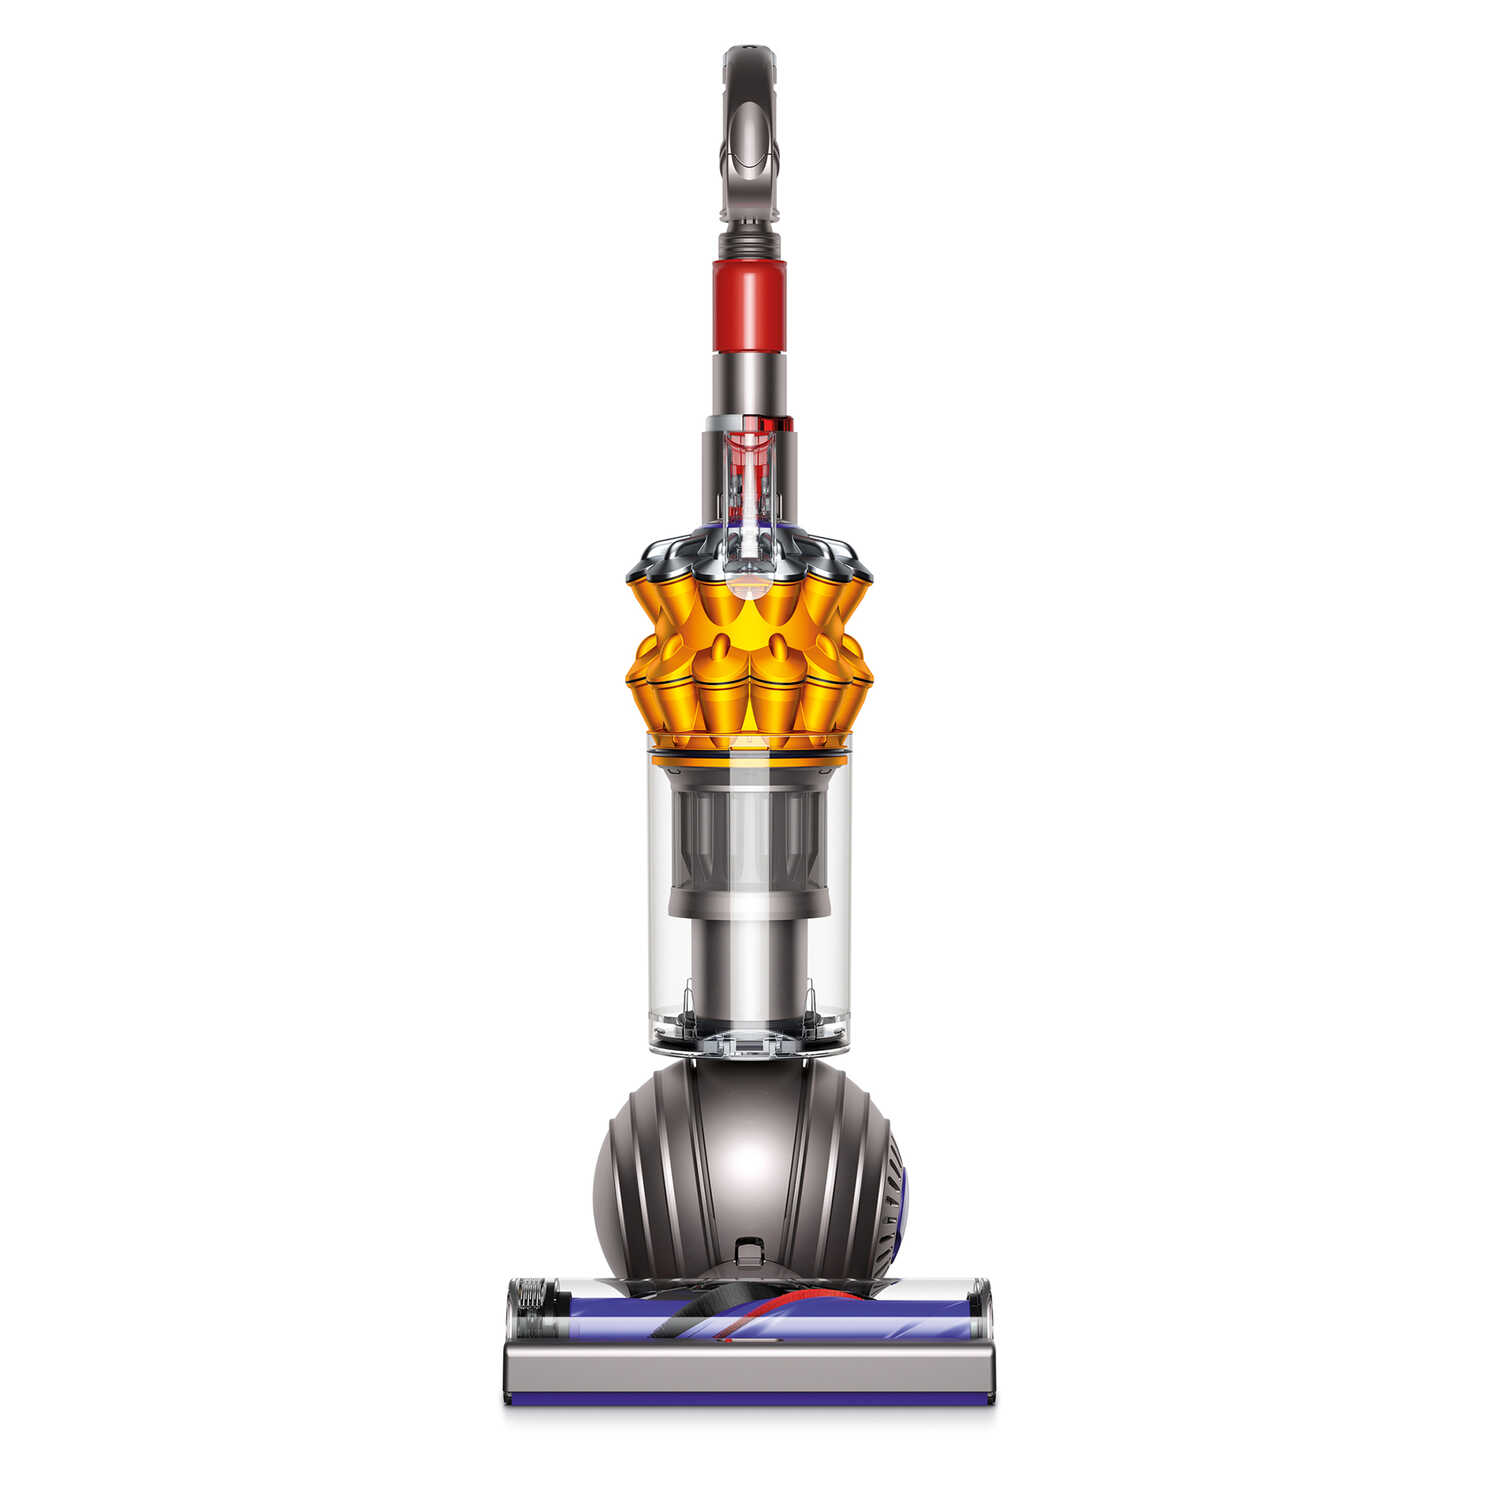 Dyson  Small Ball  Bagless  Upright Vacuum  7 amps HEPA  Multi-Colored